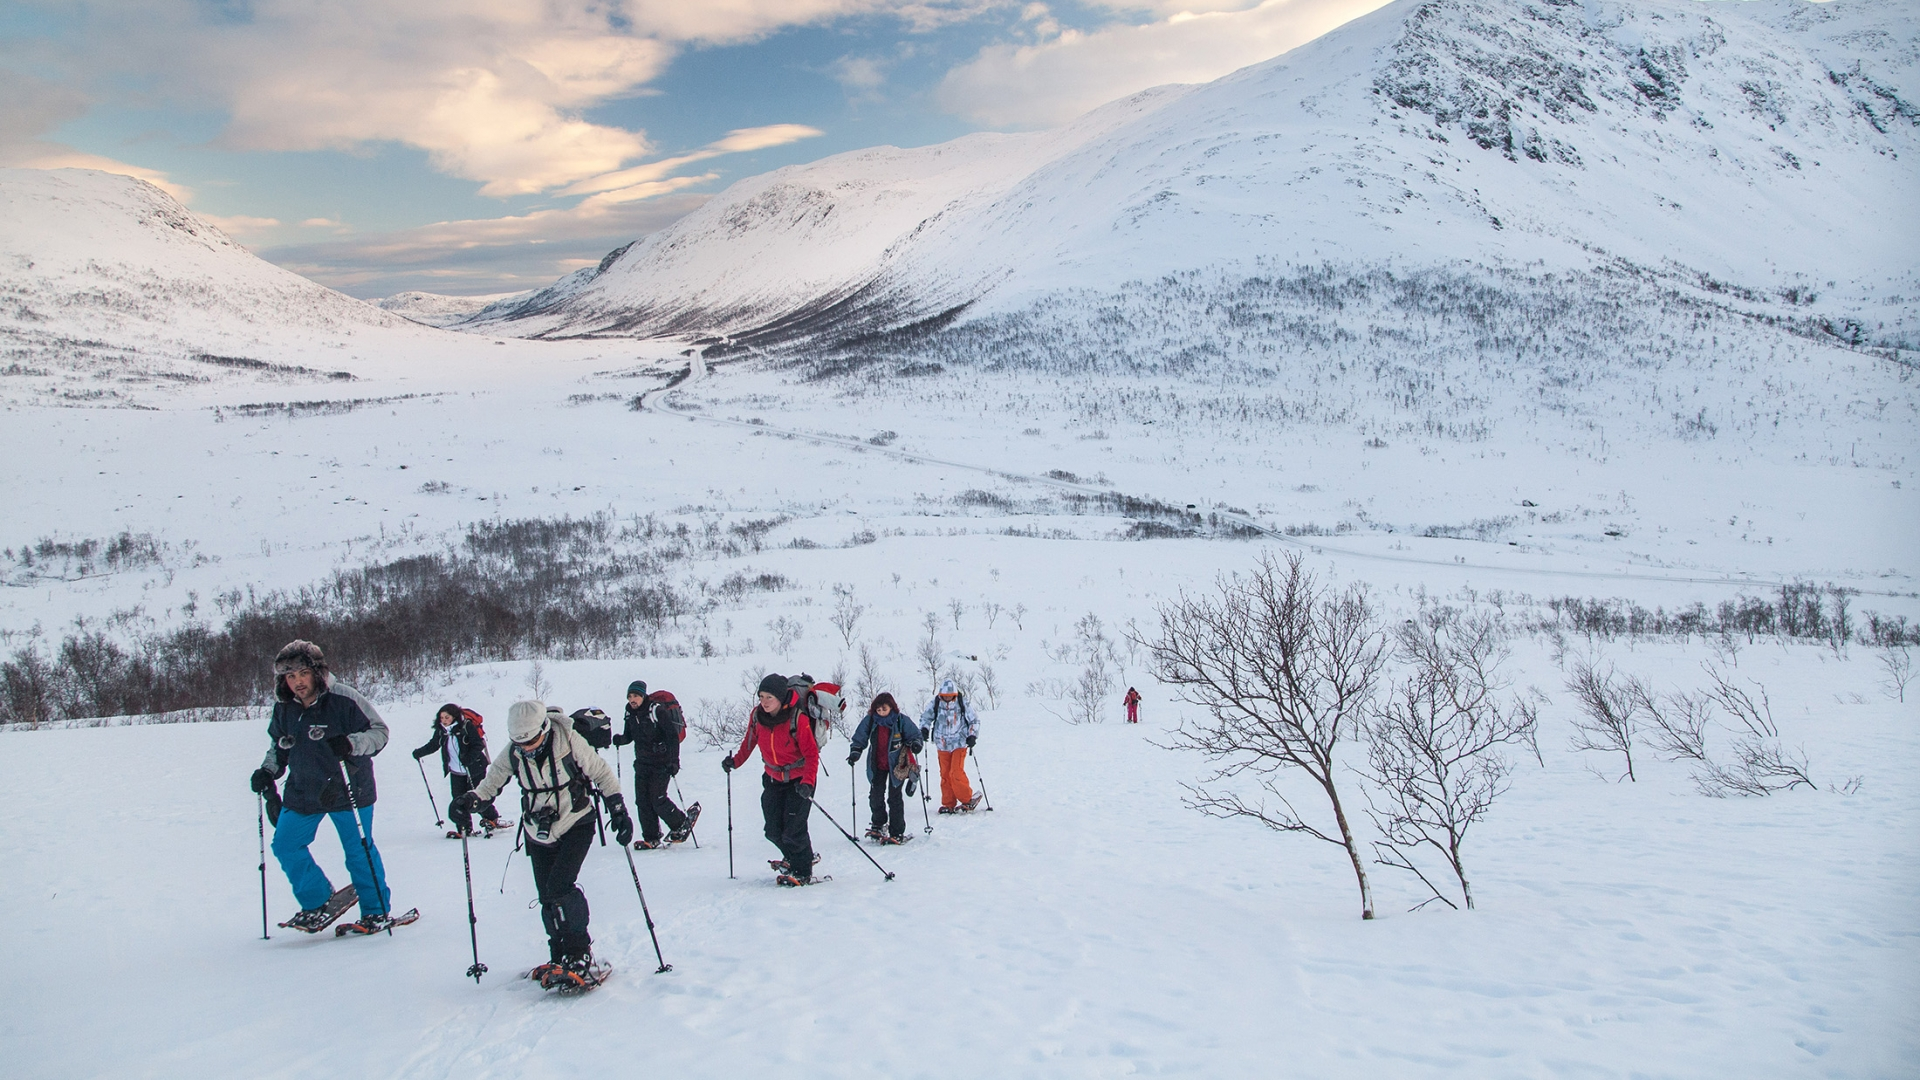 Group of people snowshoeing in winter landscape